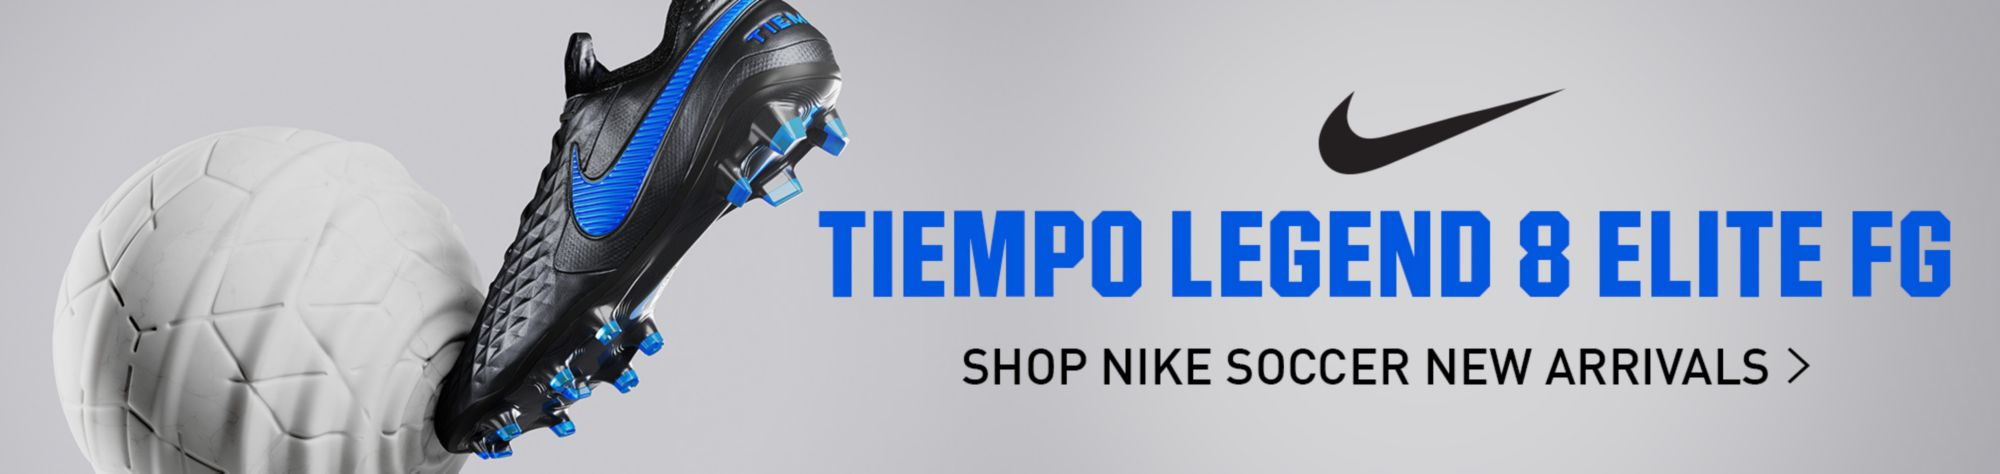 TIEMPO LEGEND 8 ELITE FG SHOP NIKE SOCCER NEW ARRIVALS